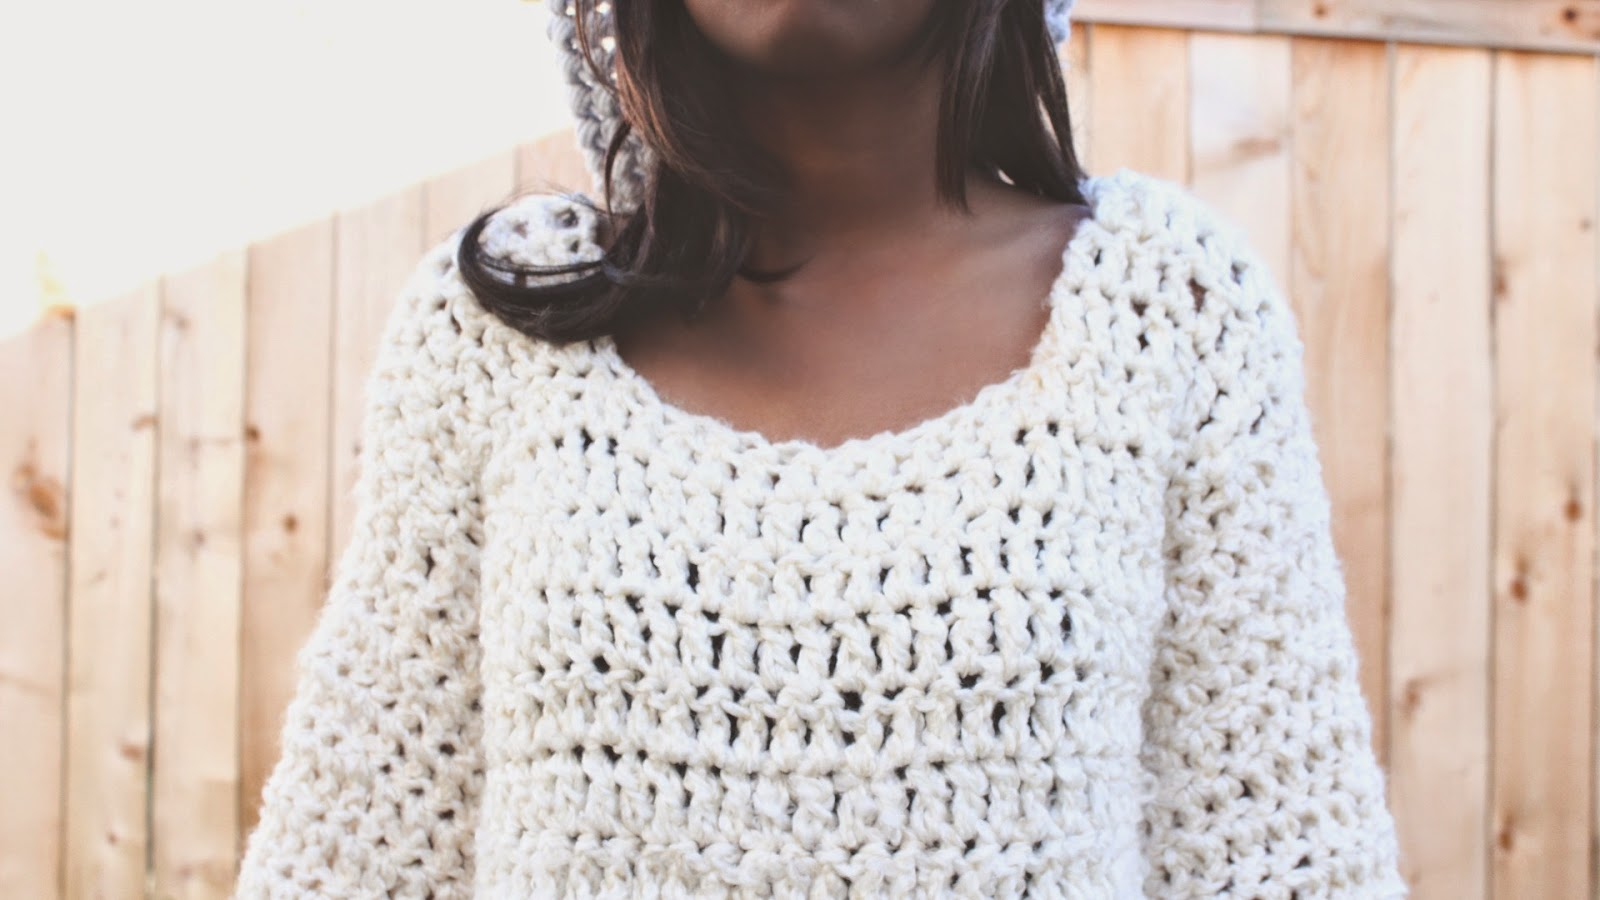 the dream crochet blog.: HandMade: The Comfy Over-Sized Crochet Sweater.